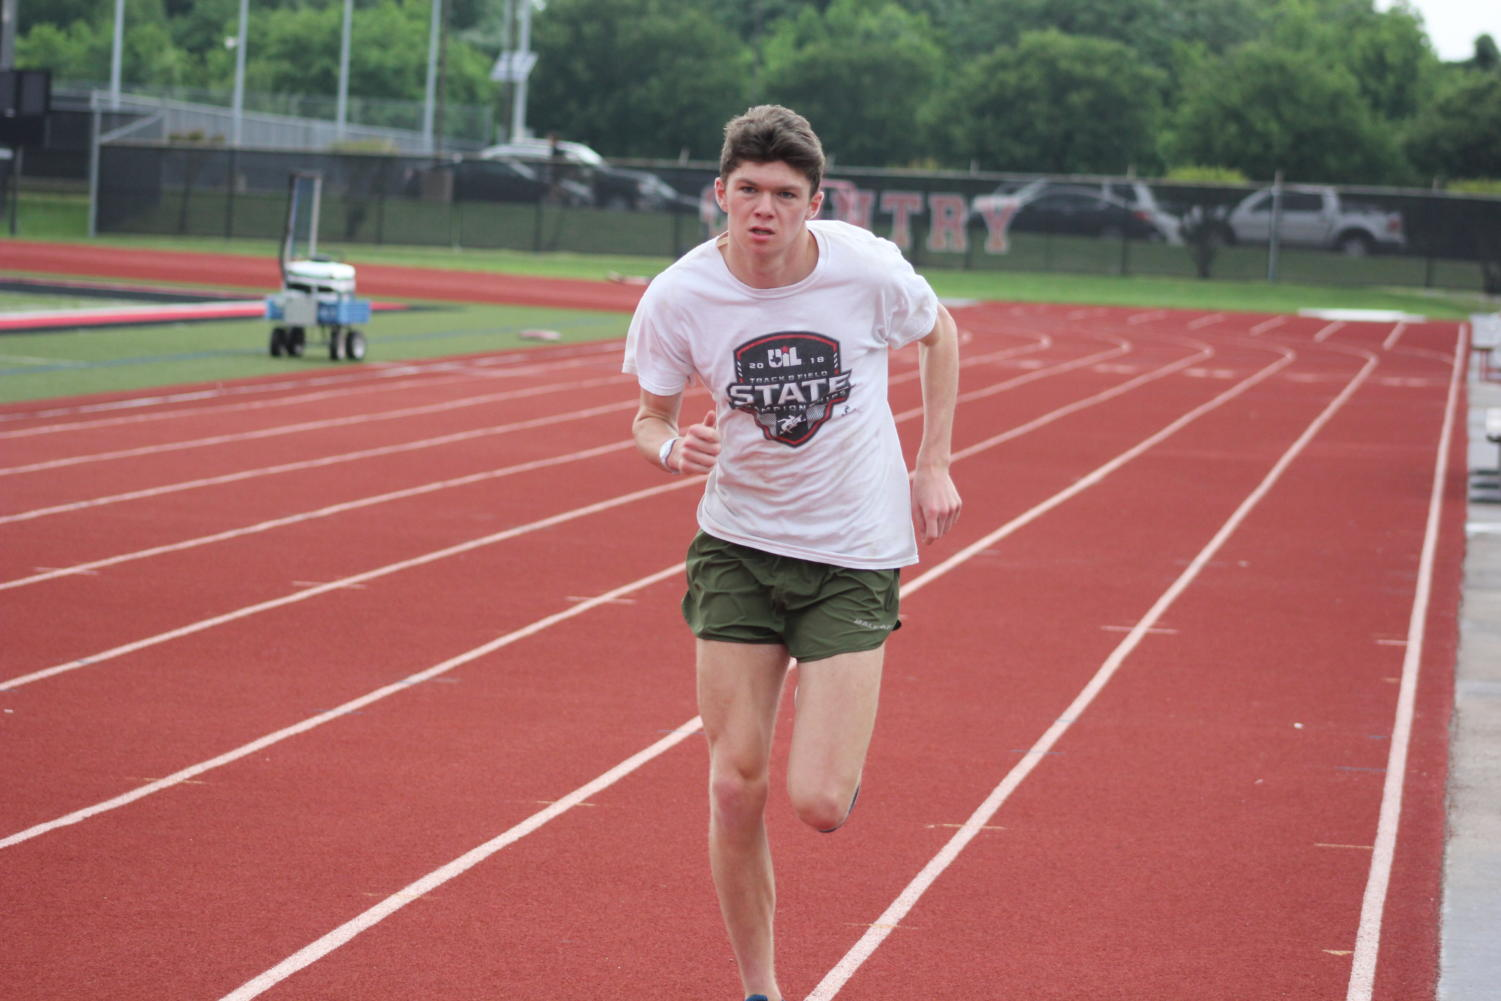 Coppell High School junior Jackson Walker practices running before school Tuesday morning at the Buddy Echols Track. Walker is preparing for the state track meet this weekend.